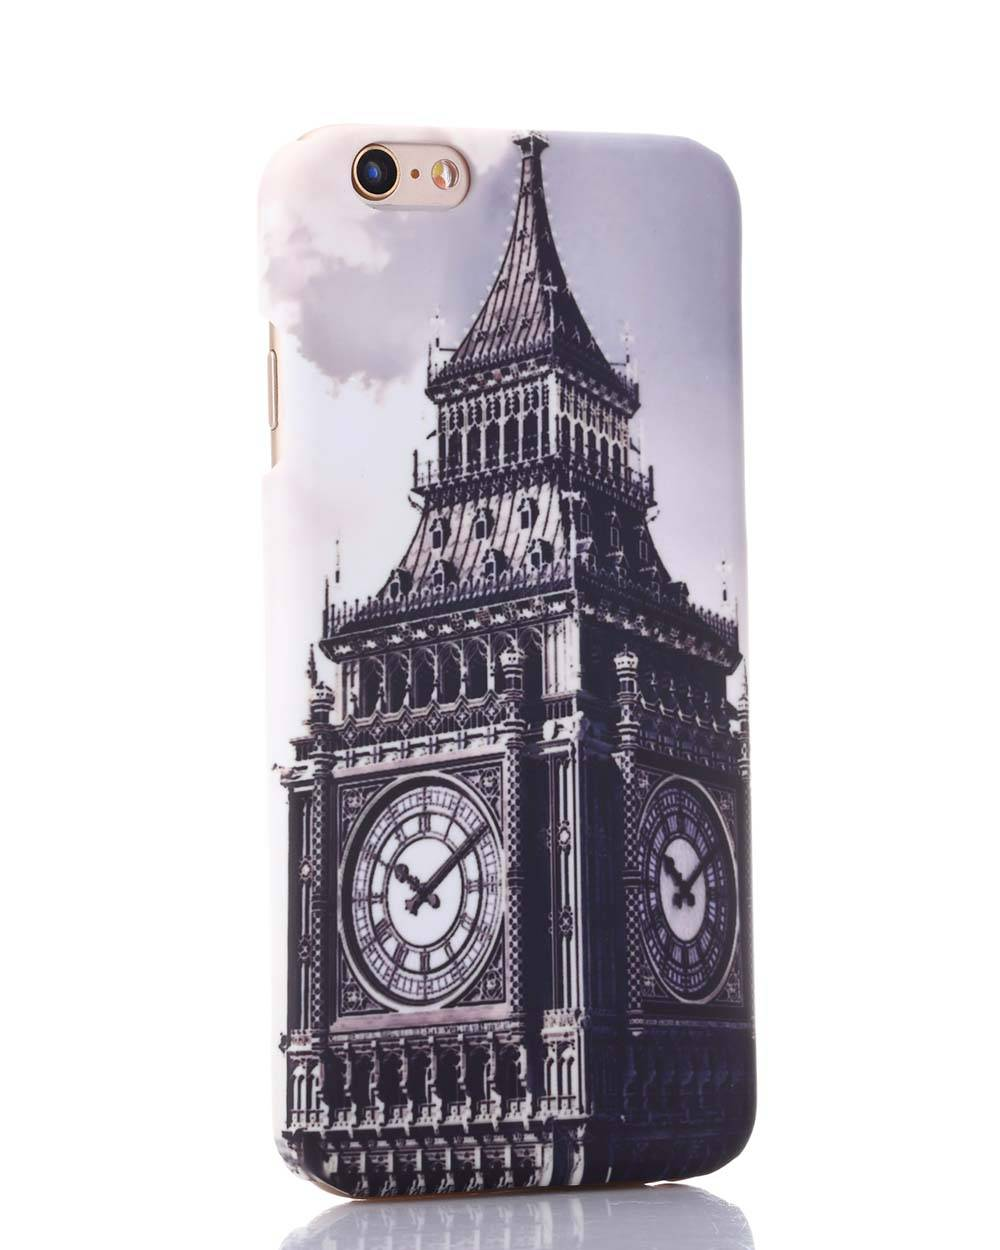 3D Sublimation hard case for iPhone 6 Plus